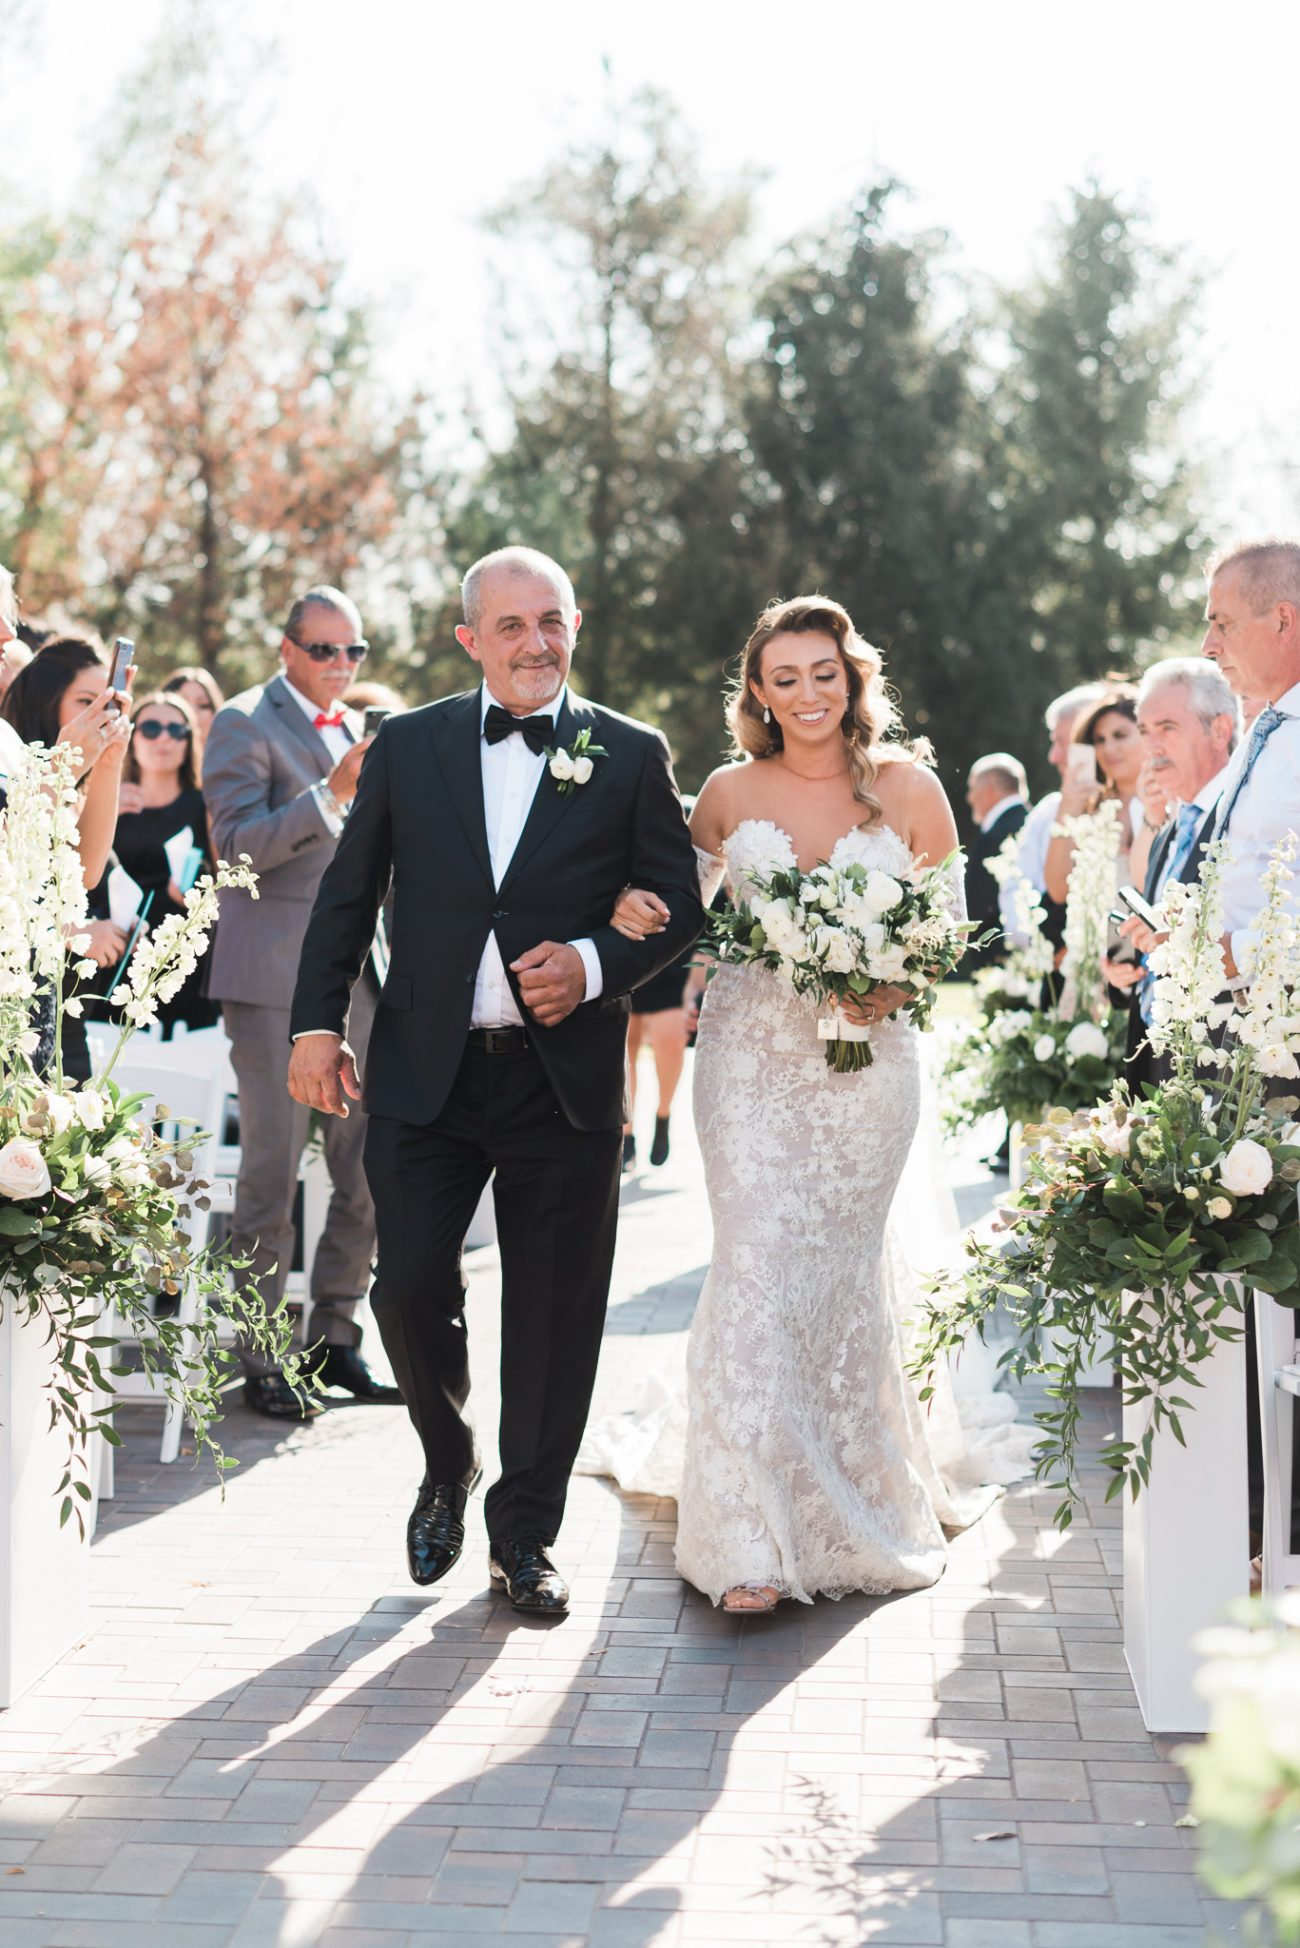 Bride and father walking down the path in outdoor ceremony